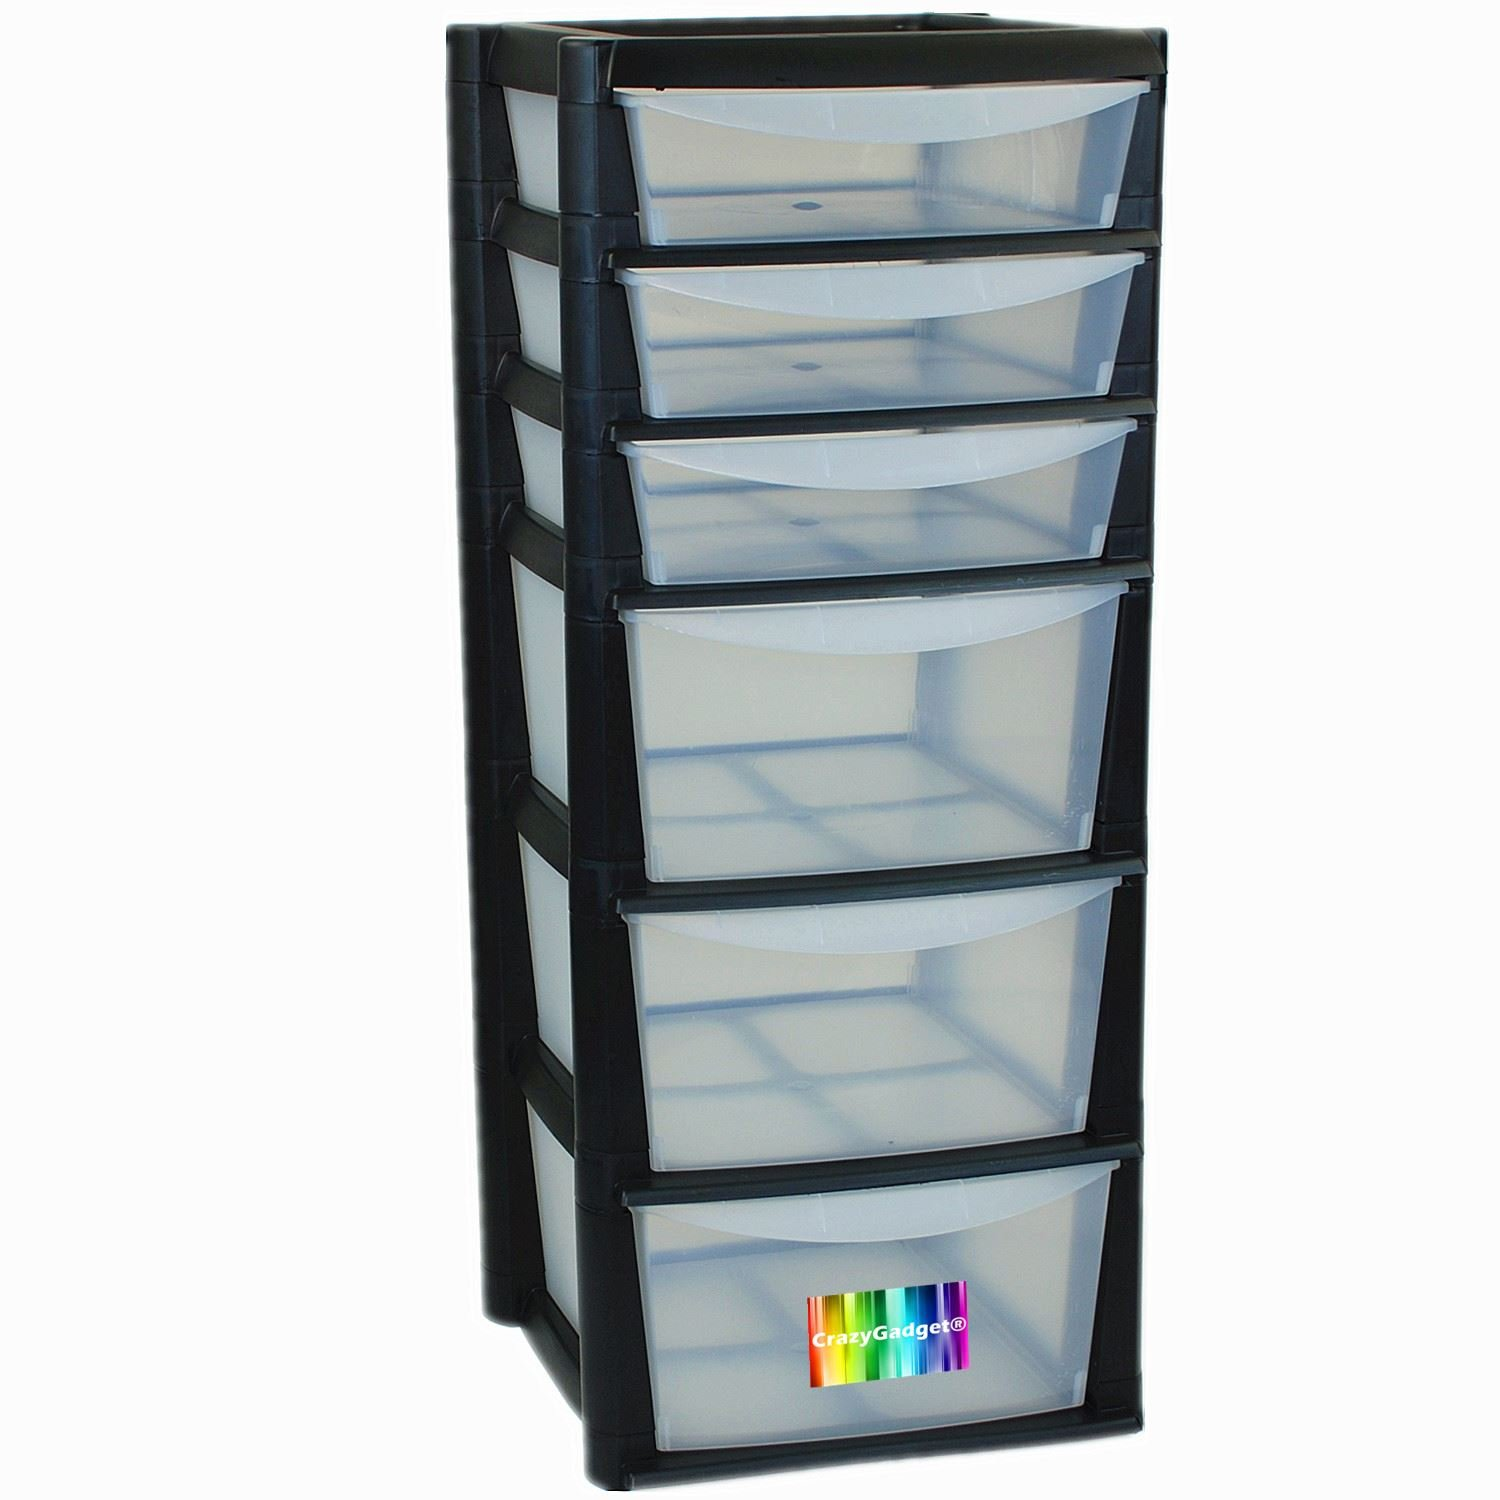 CrazyGadget® Extra Large 6 Drawer Tower Storage Draw Plastic School Office Home Organiser Unit Set Black - Made In UK